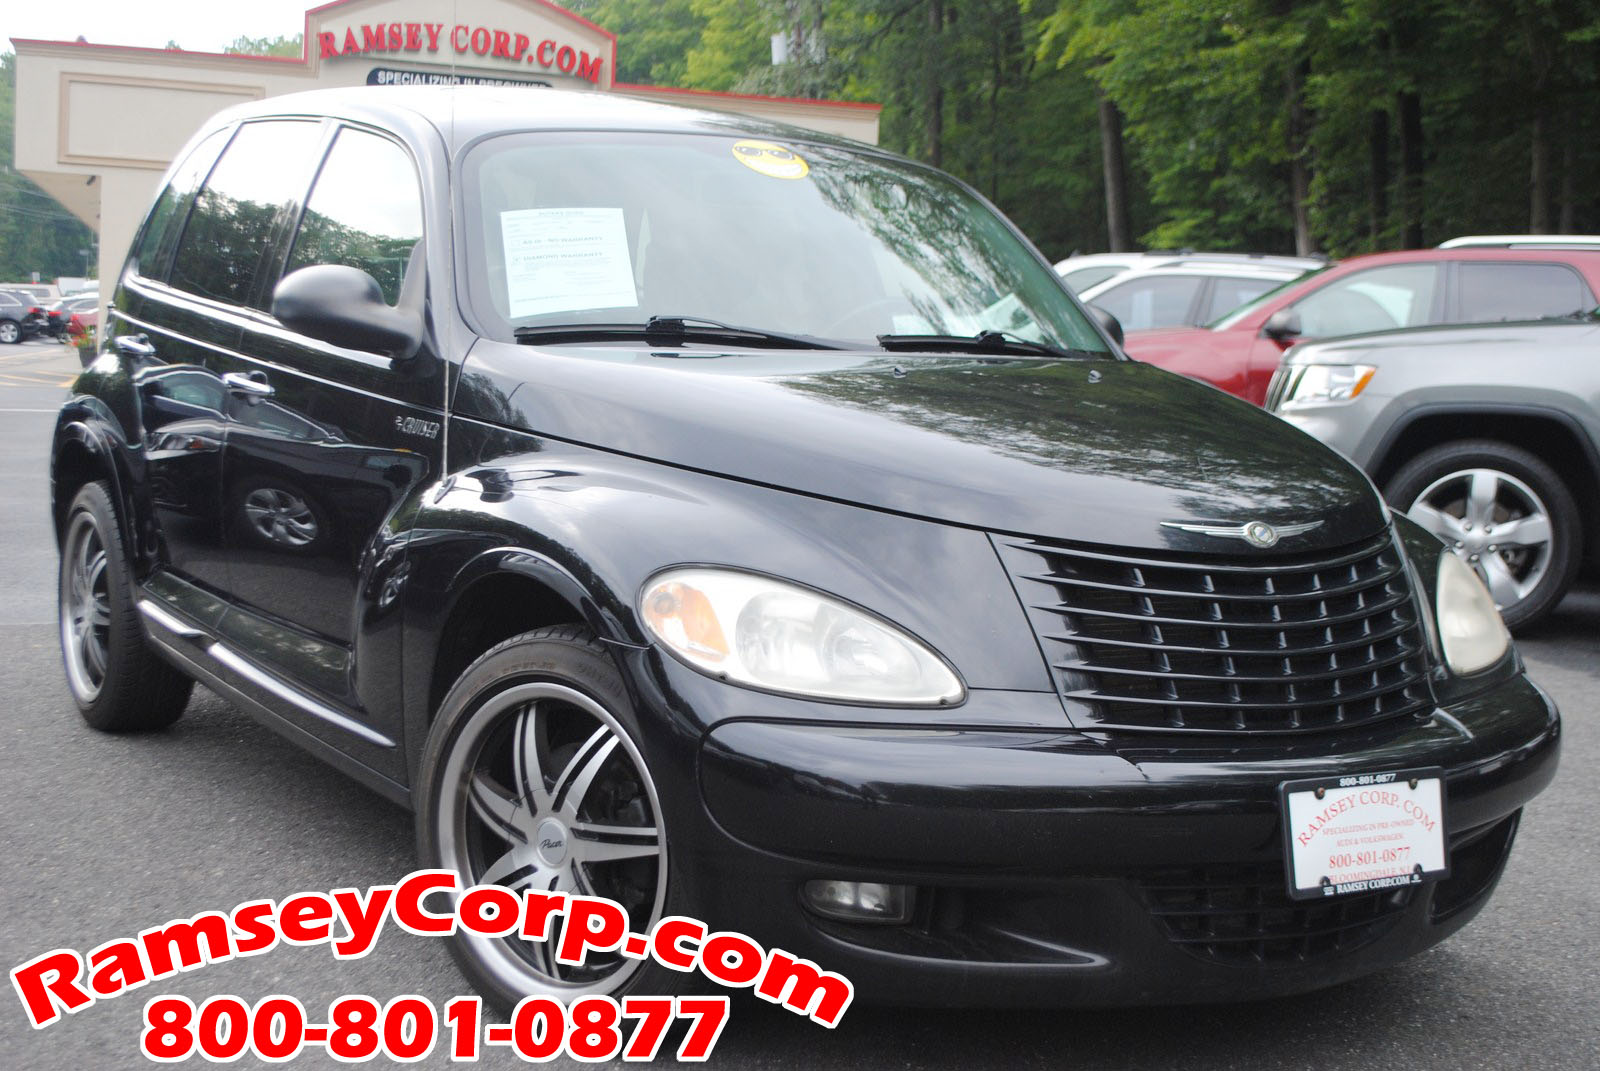 used 2005 chrysler pt cruiser for sale west milford nj. Black Bedroom Furniture Sets. Home Design Ideas